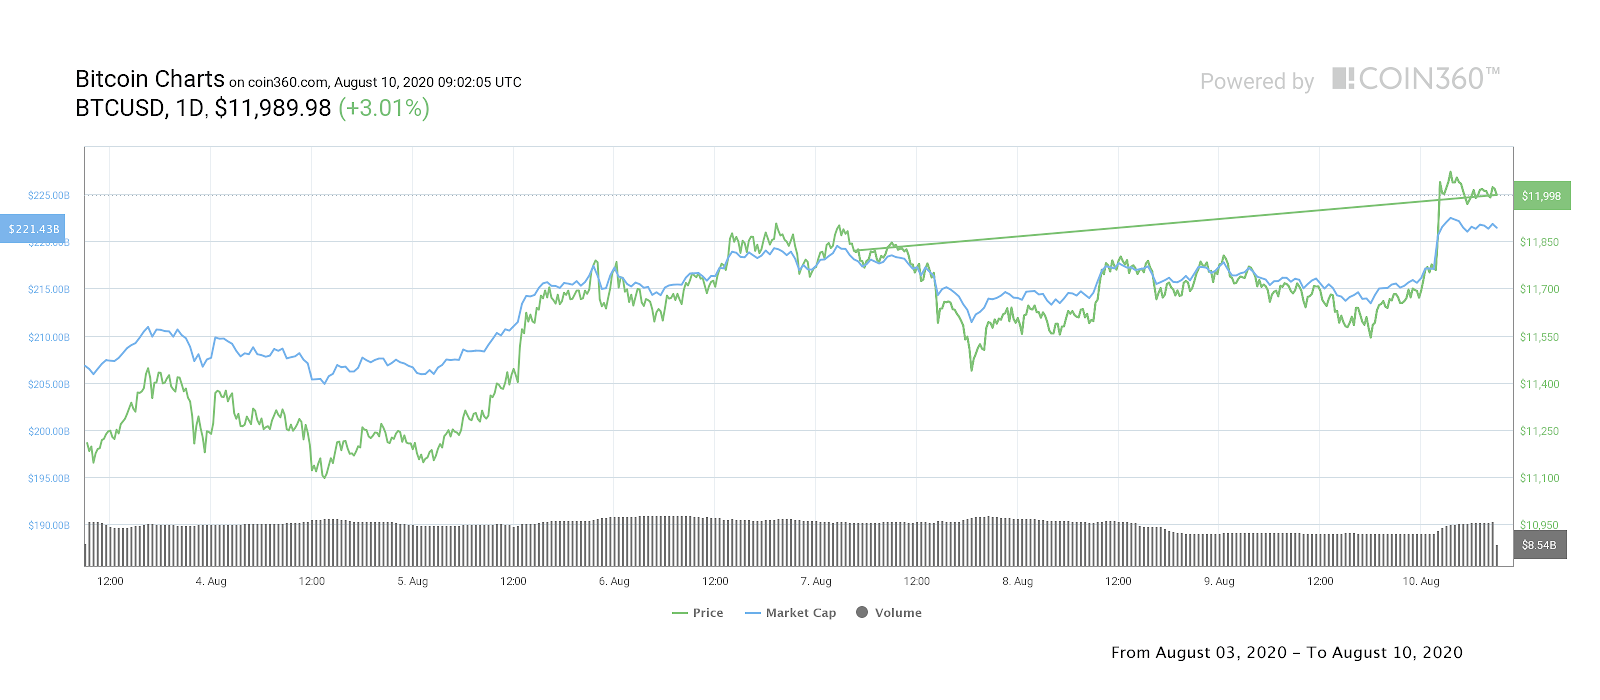 BTC/USD 7-day price chart